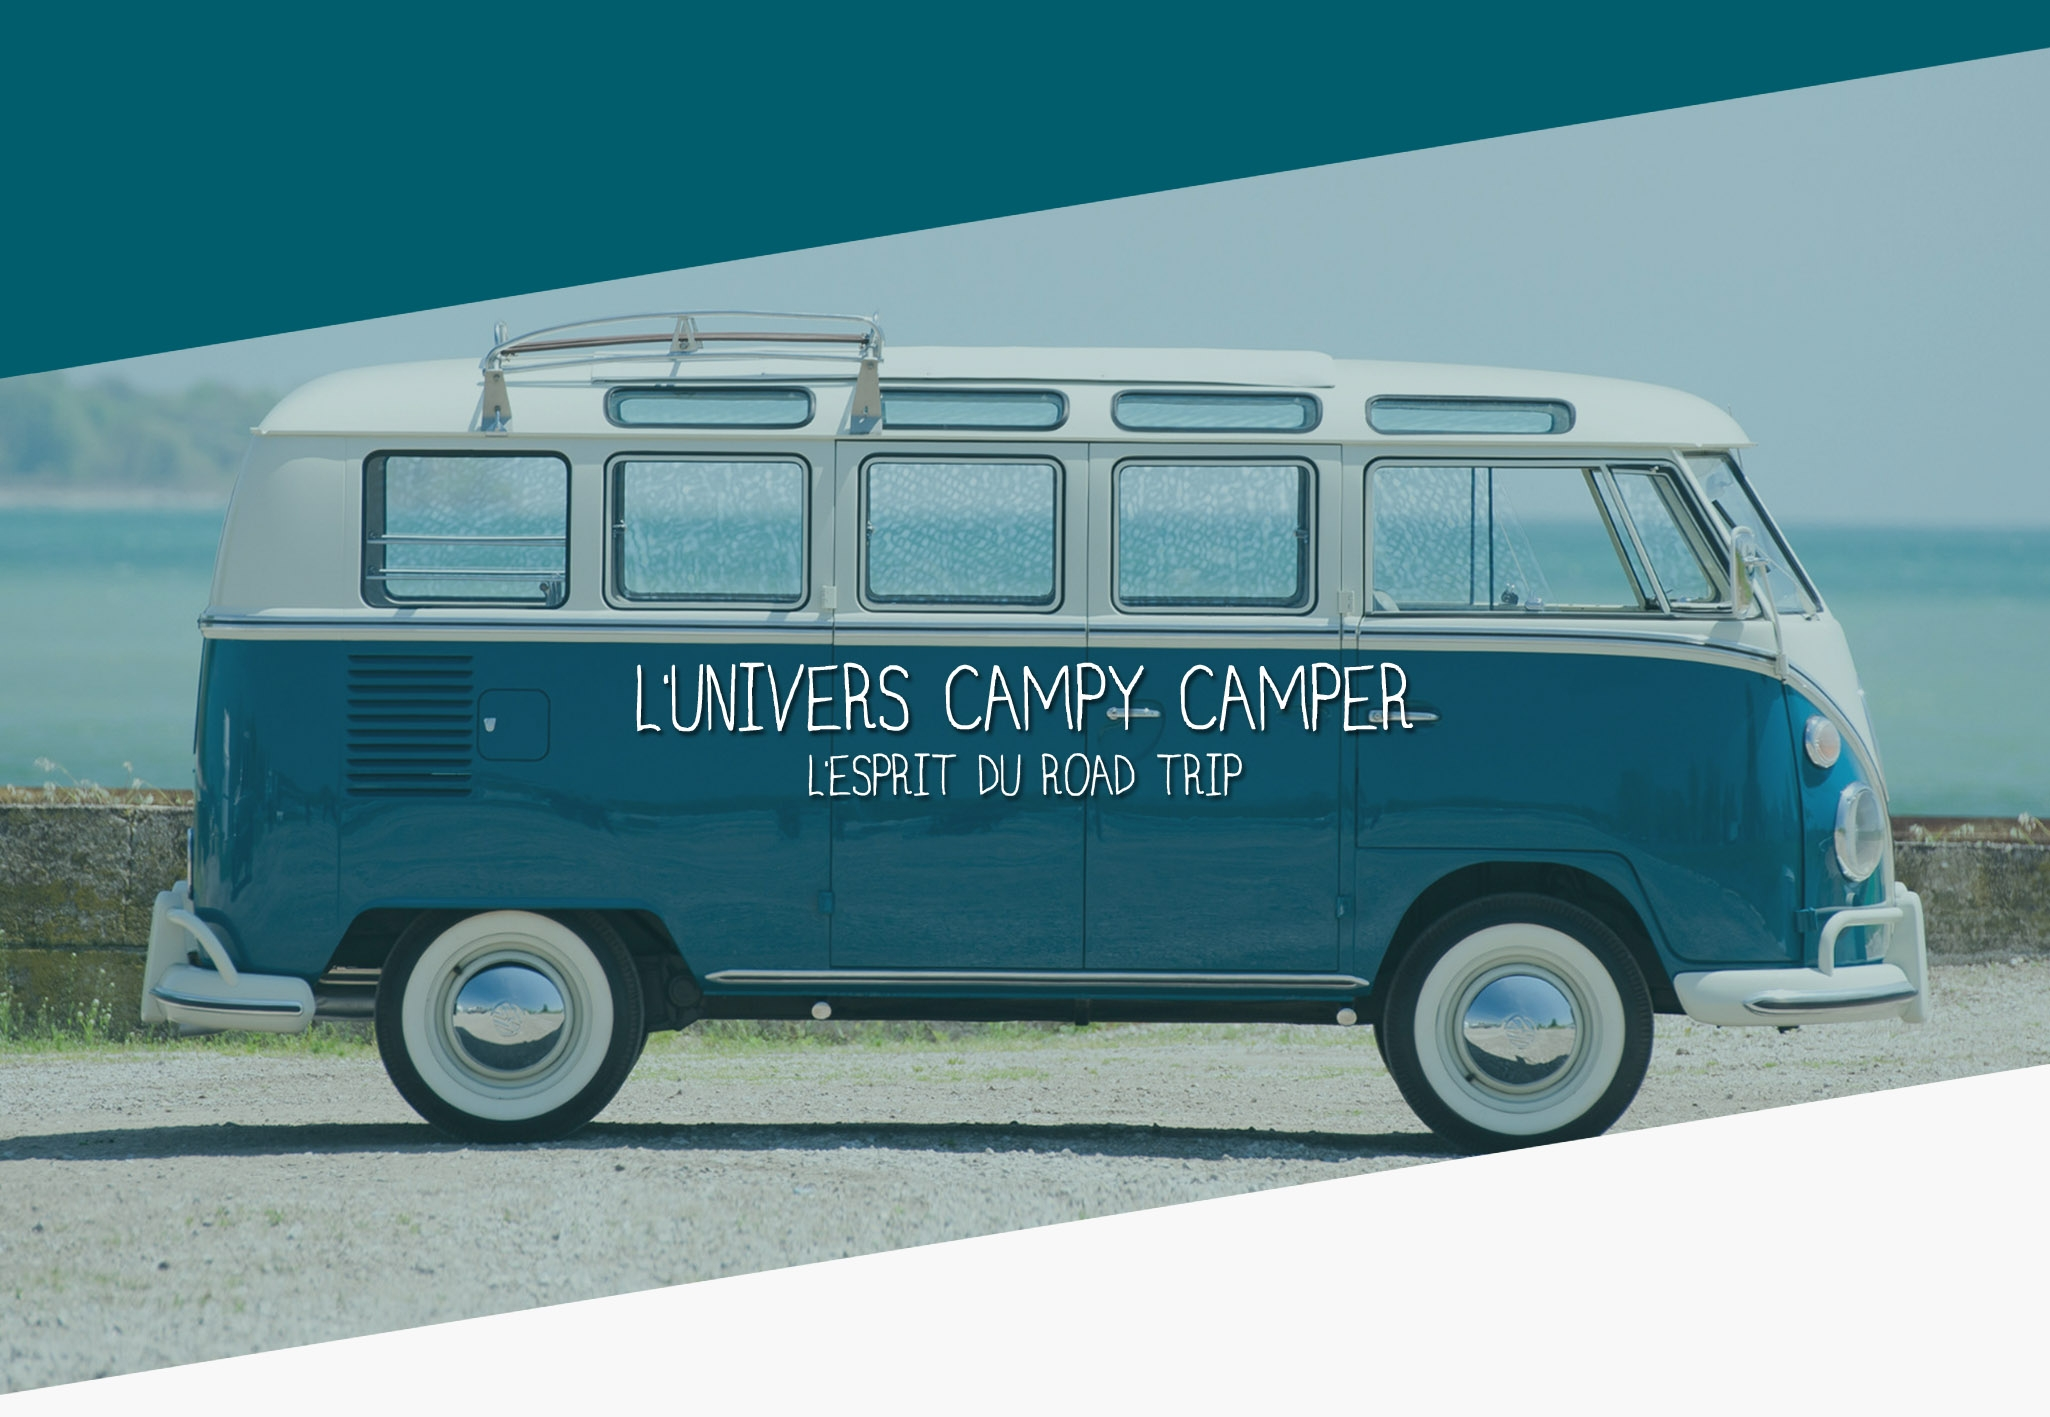 CAMPY CAMPER SHOP